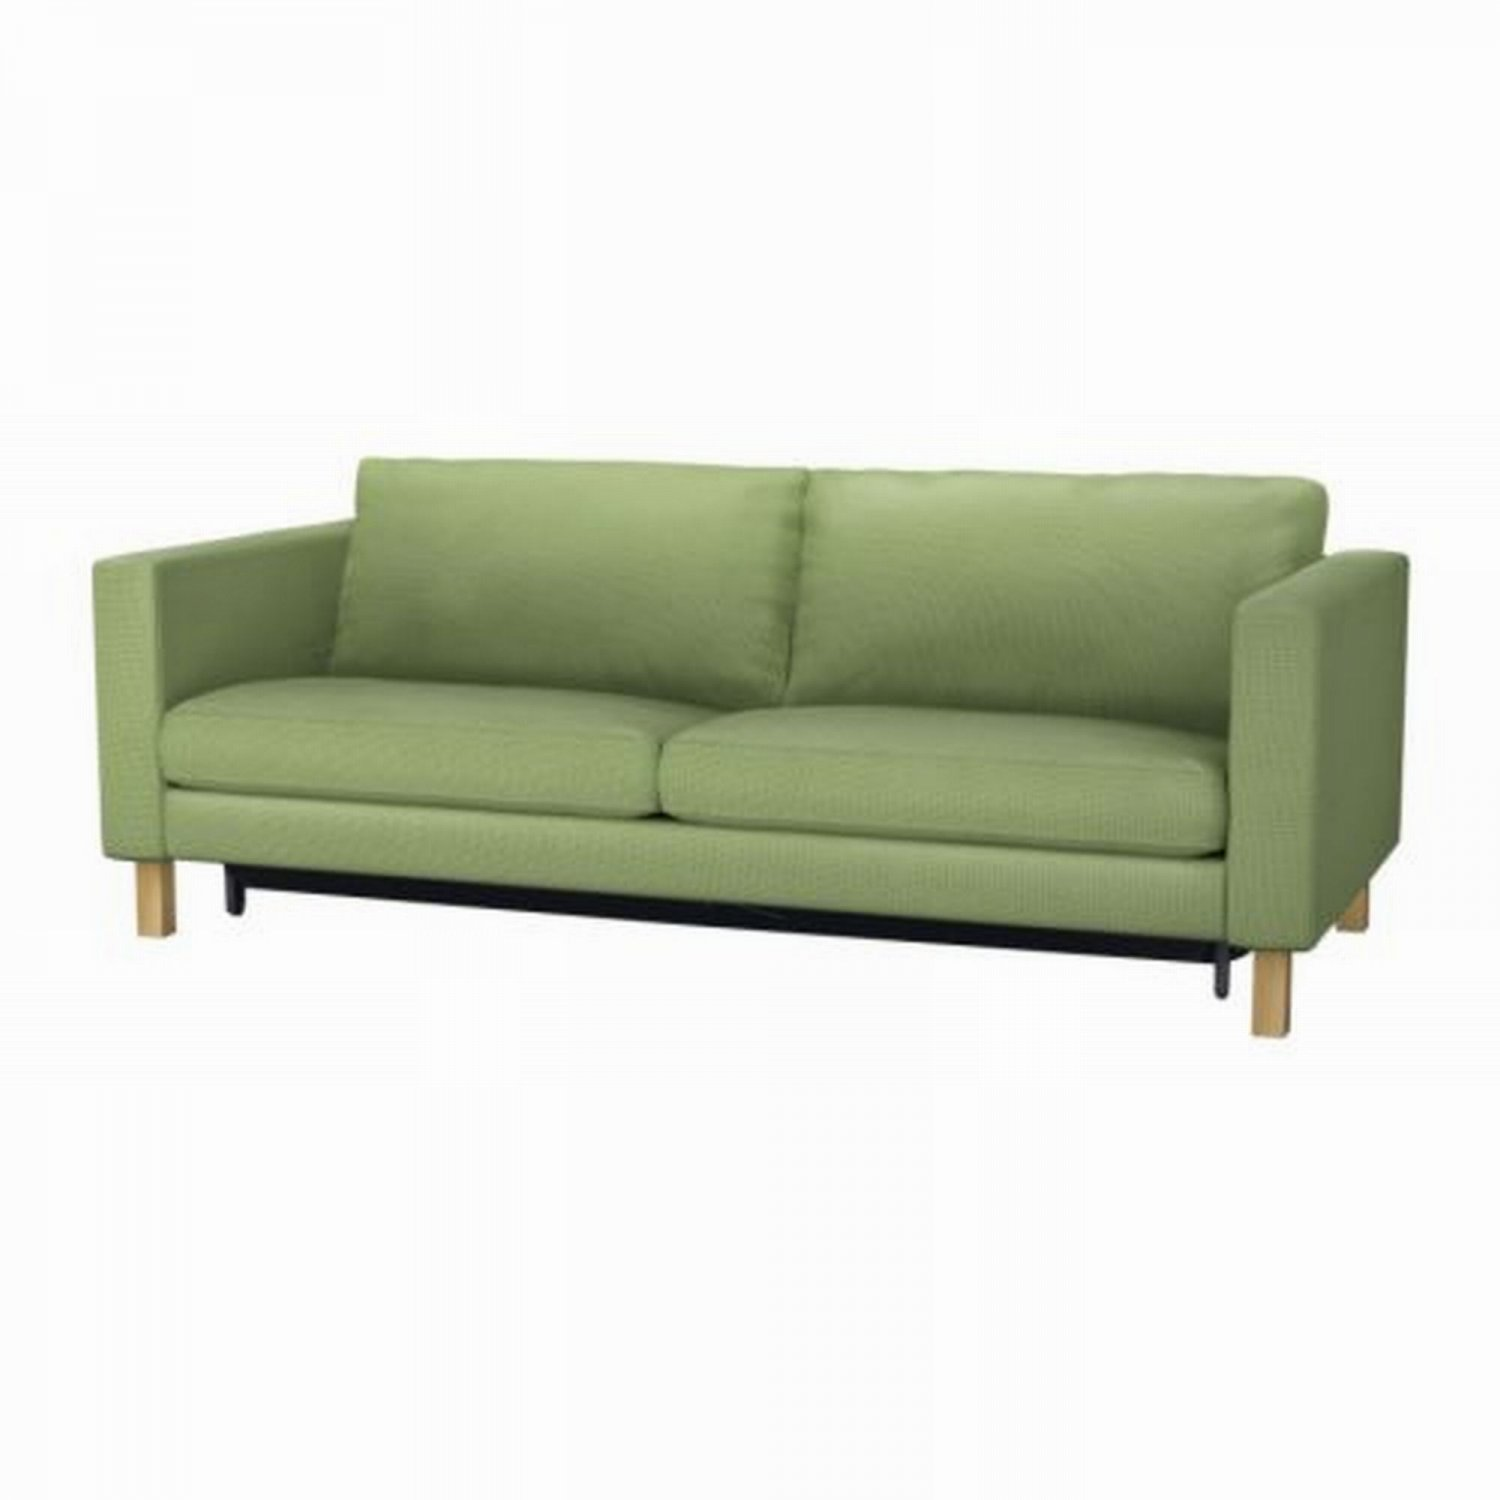 Covers For Ikea Karlstad Sofa: Ikea KARLSTAD Sofa Bed Sofabed SLIPCOVER Cover KORNDAL GREEN